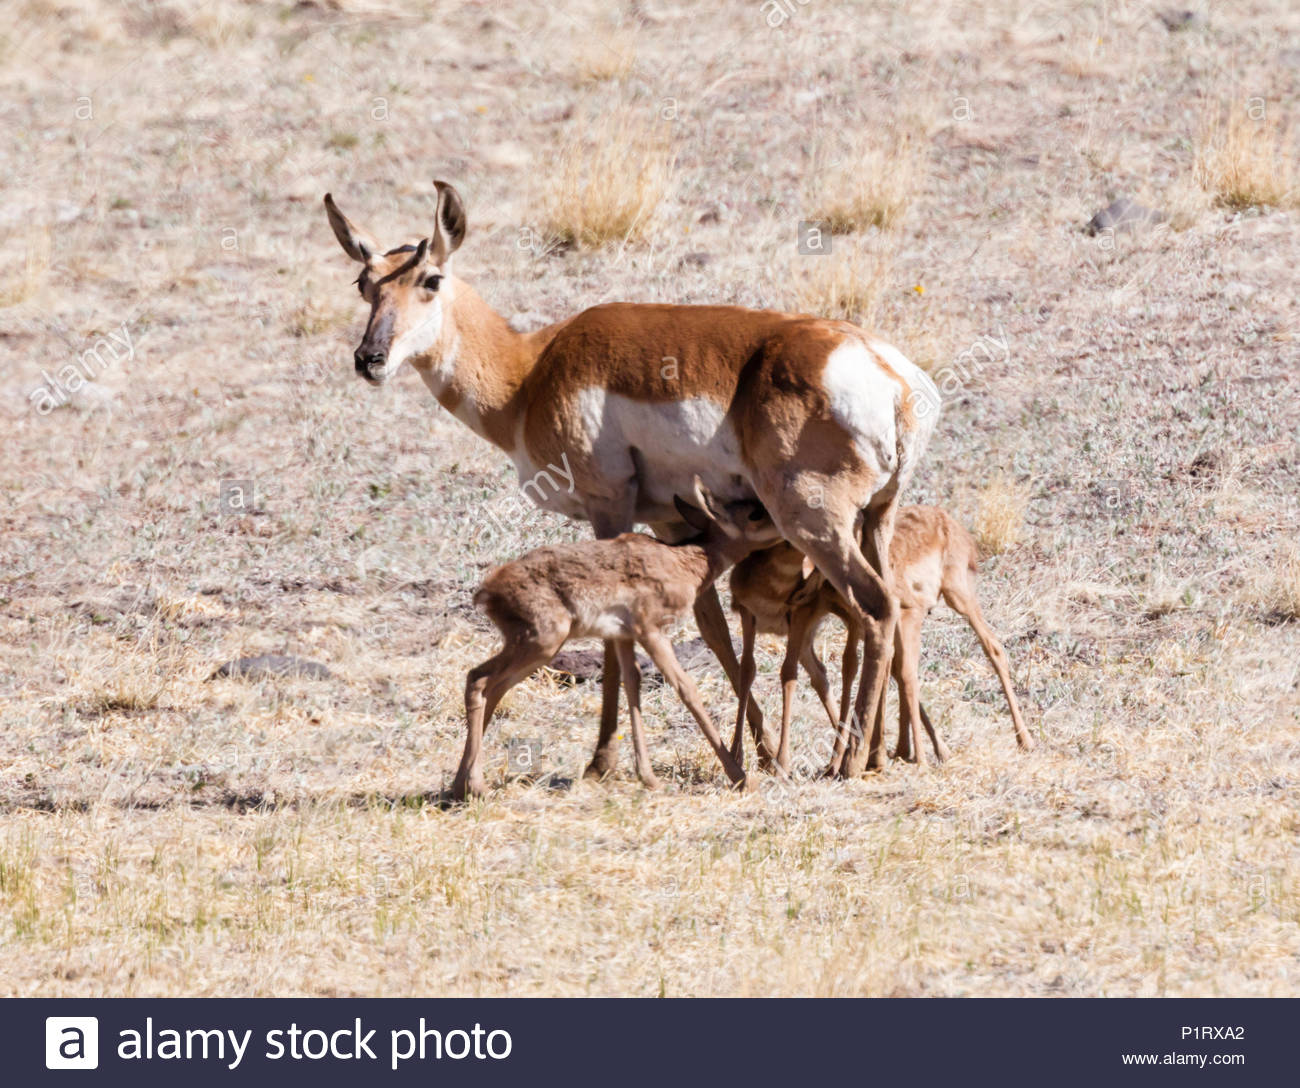 pronghorn-antilocapra-americana-doe-with-triplet-fawns-nursing-arizona-usa-P1RXA2.jpg